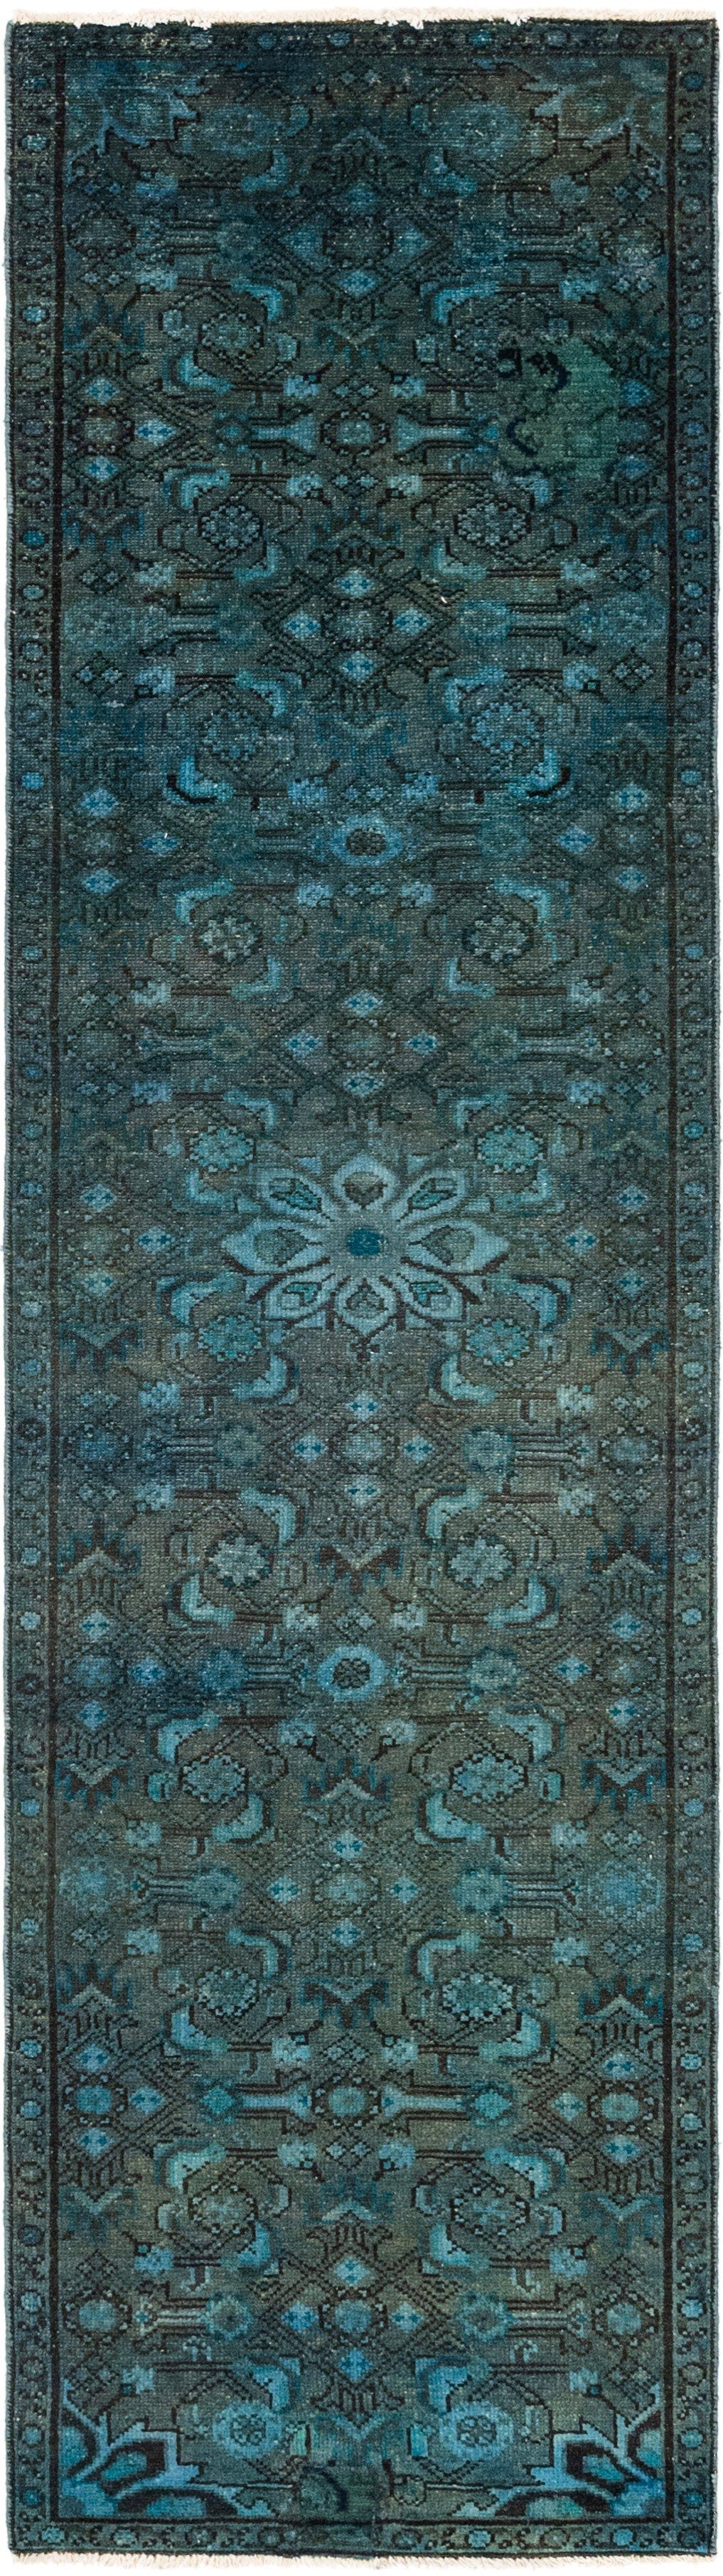 2' 3 x 8' 8 Ultra Vintage Persian Runner Rug main image